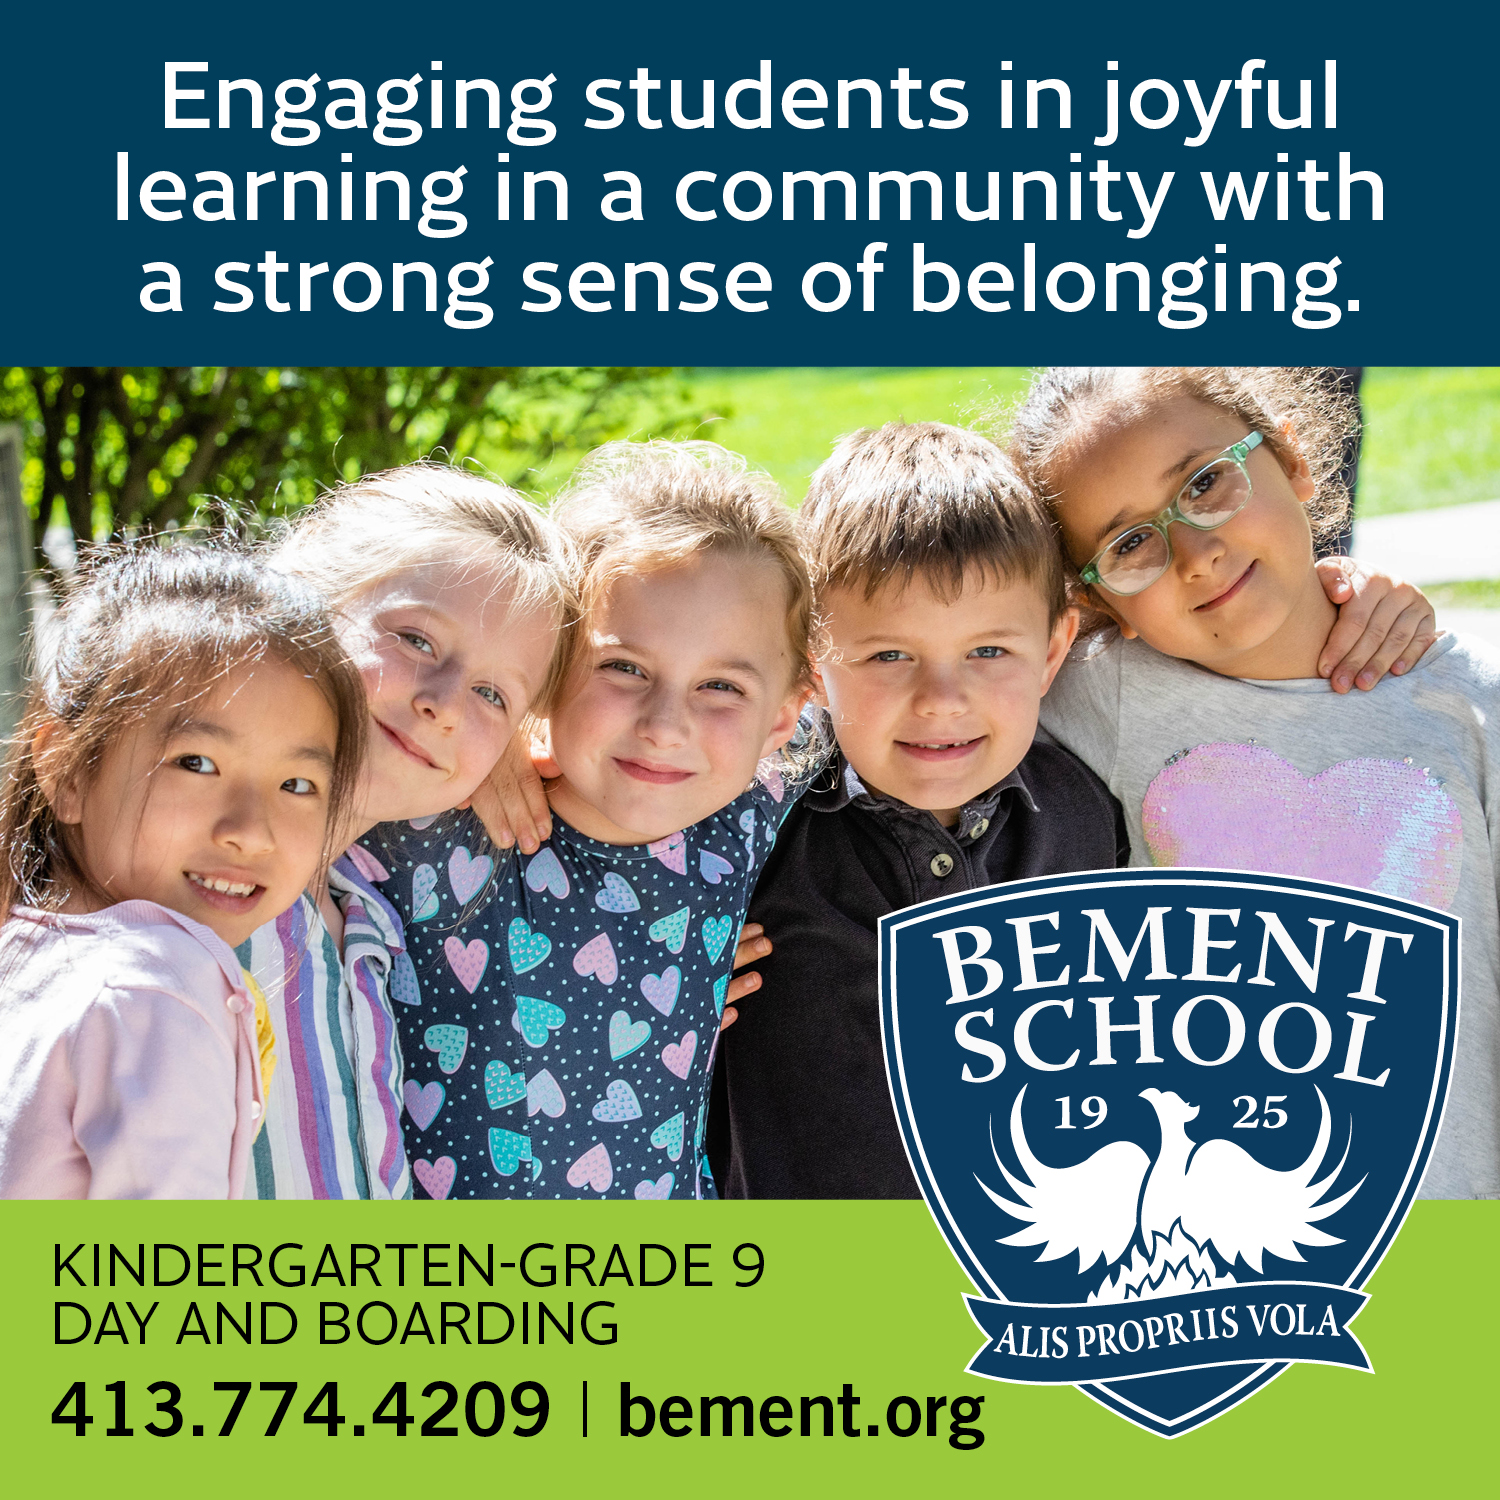 Photo of young students with logo overlay for Bement School.